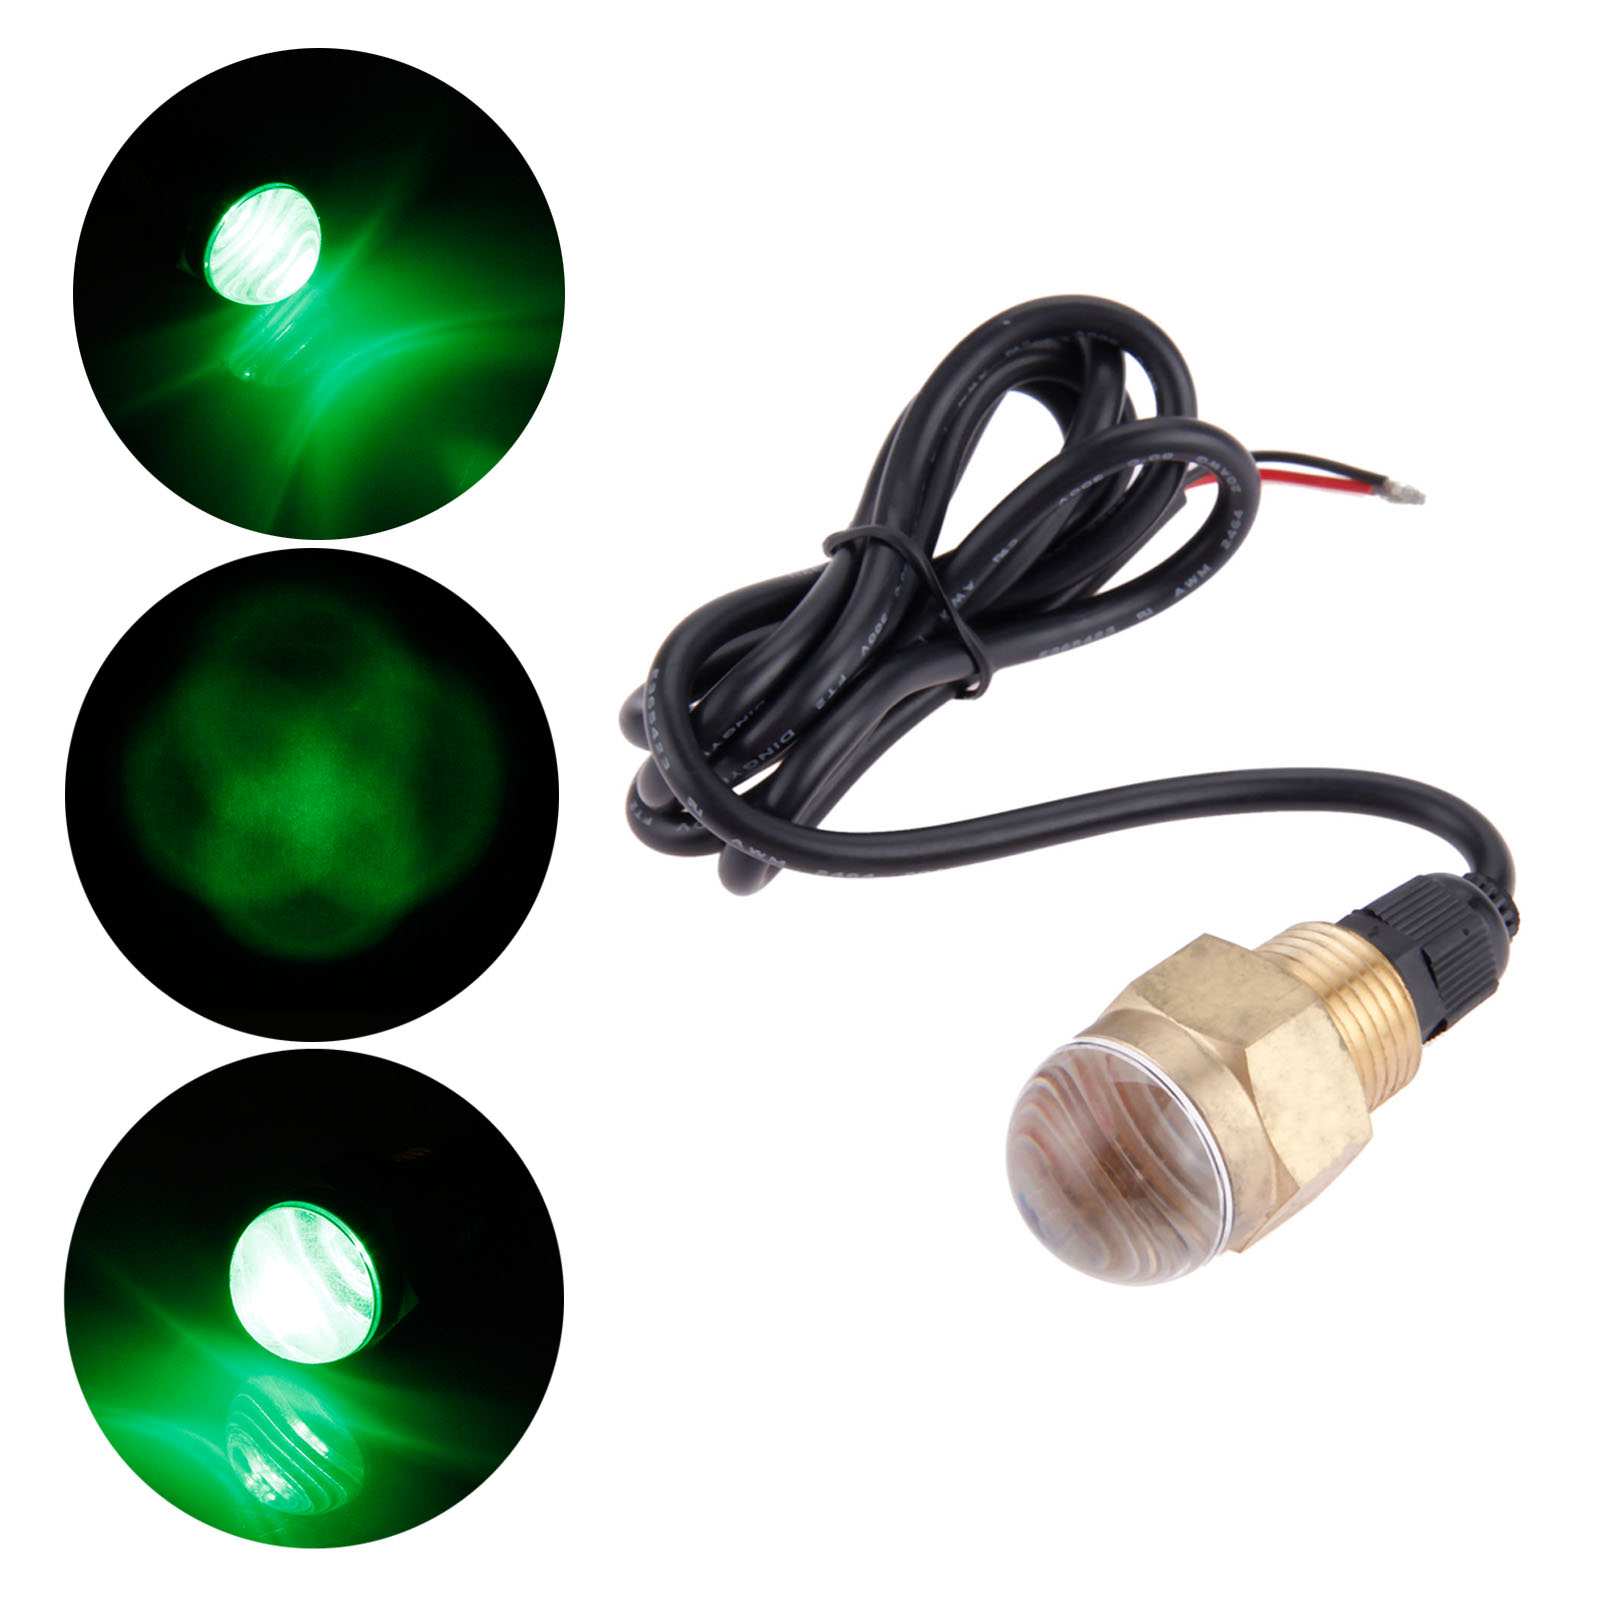 Boat Accessories Brass Super Bright Green LED Light 12V Waterproof Underwater Lamp For Marine Yacht Pontoon Fishing Sailing